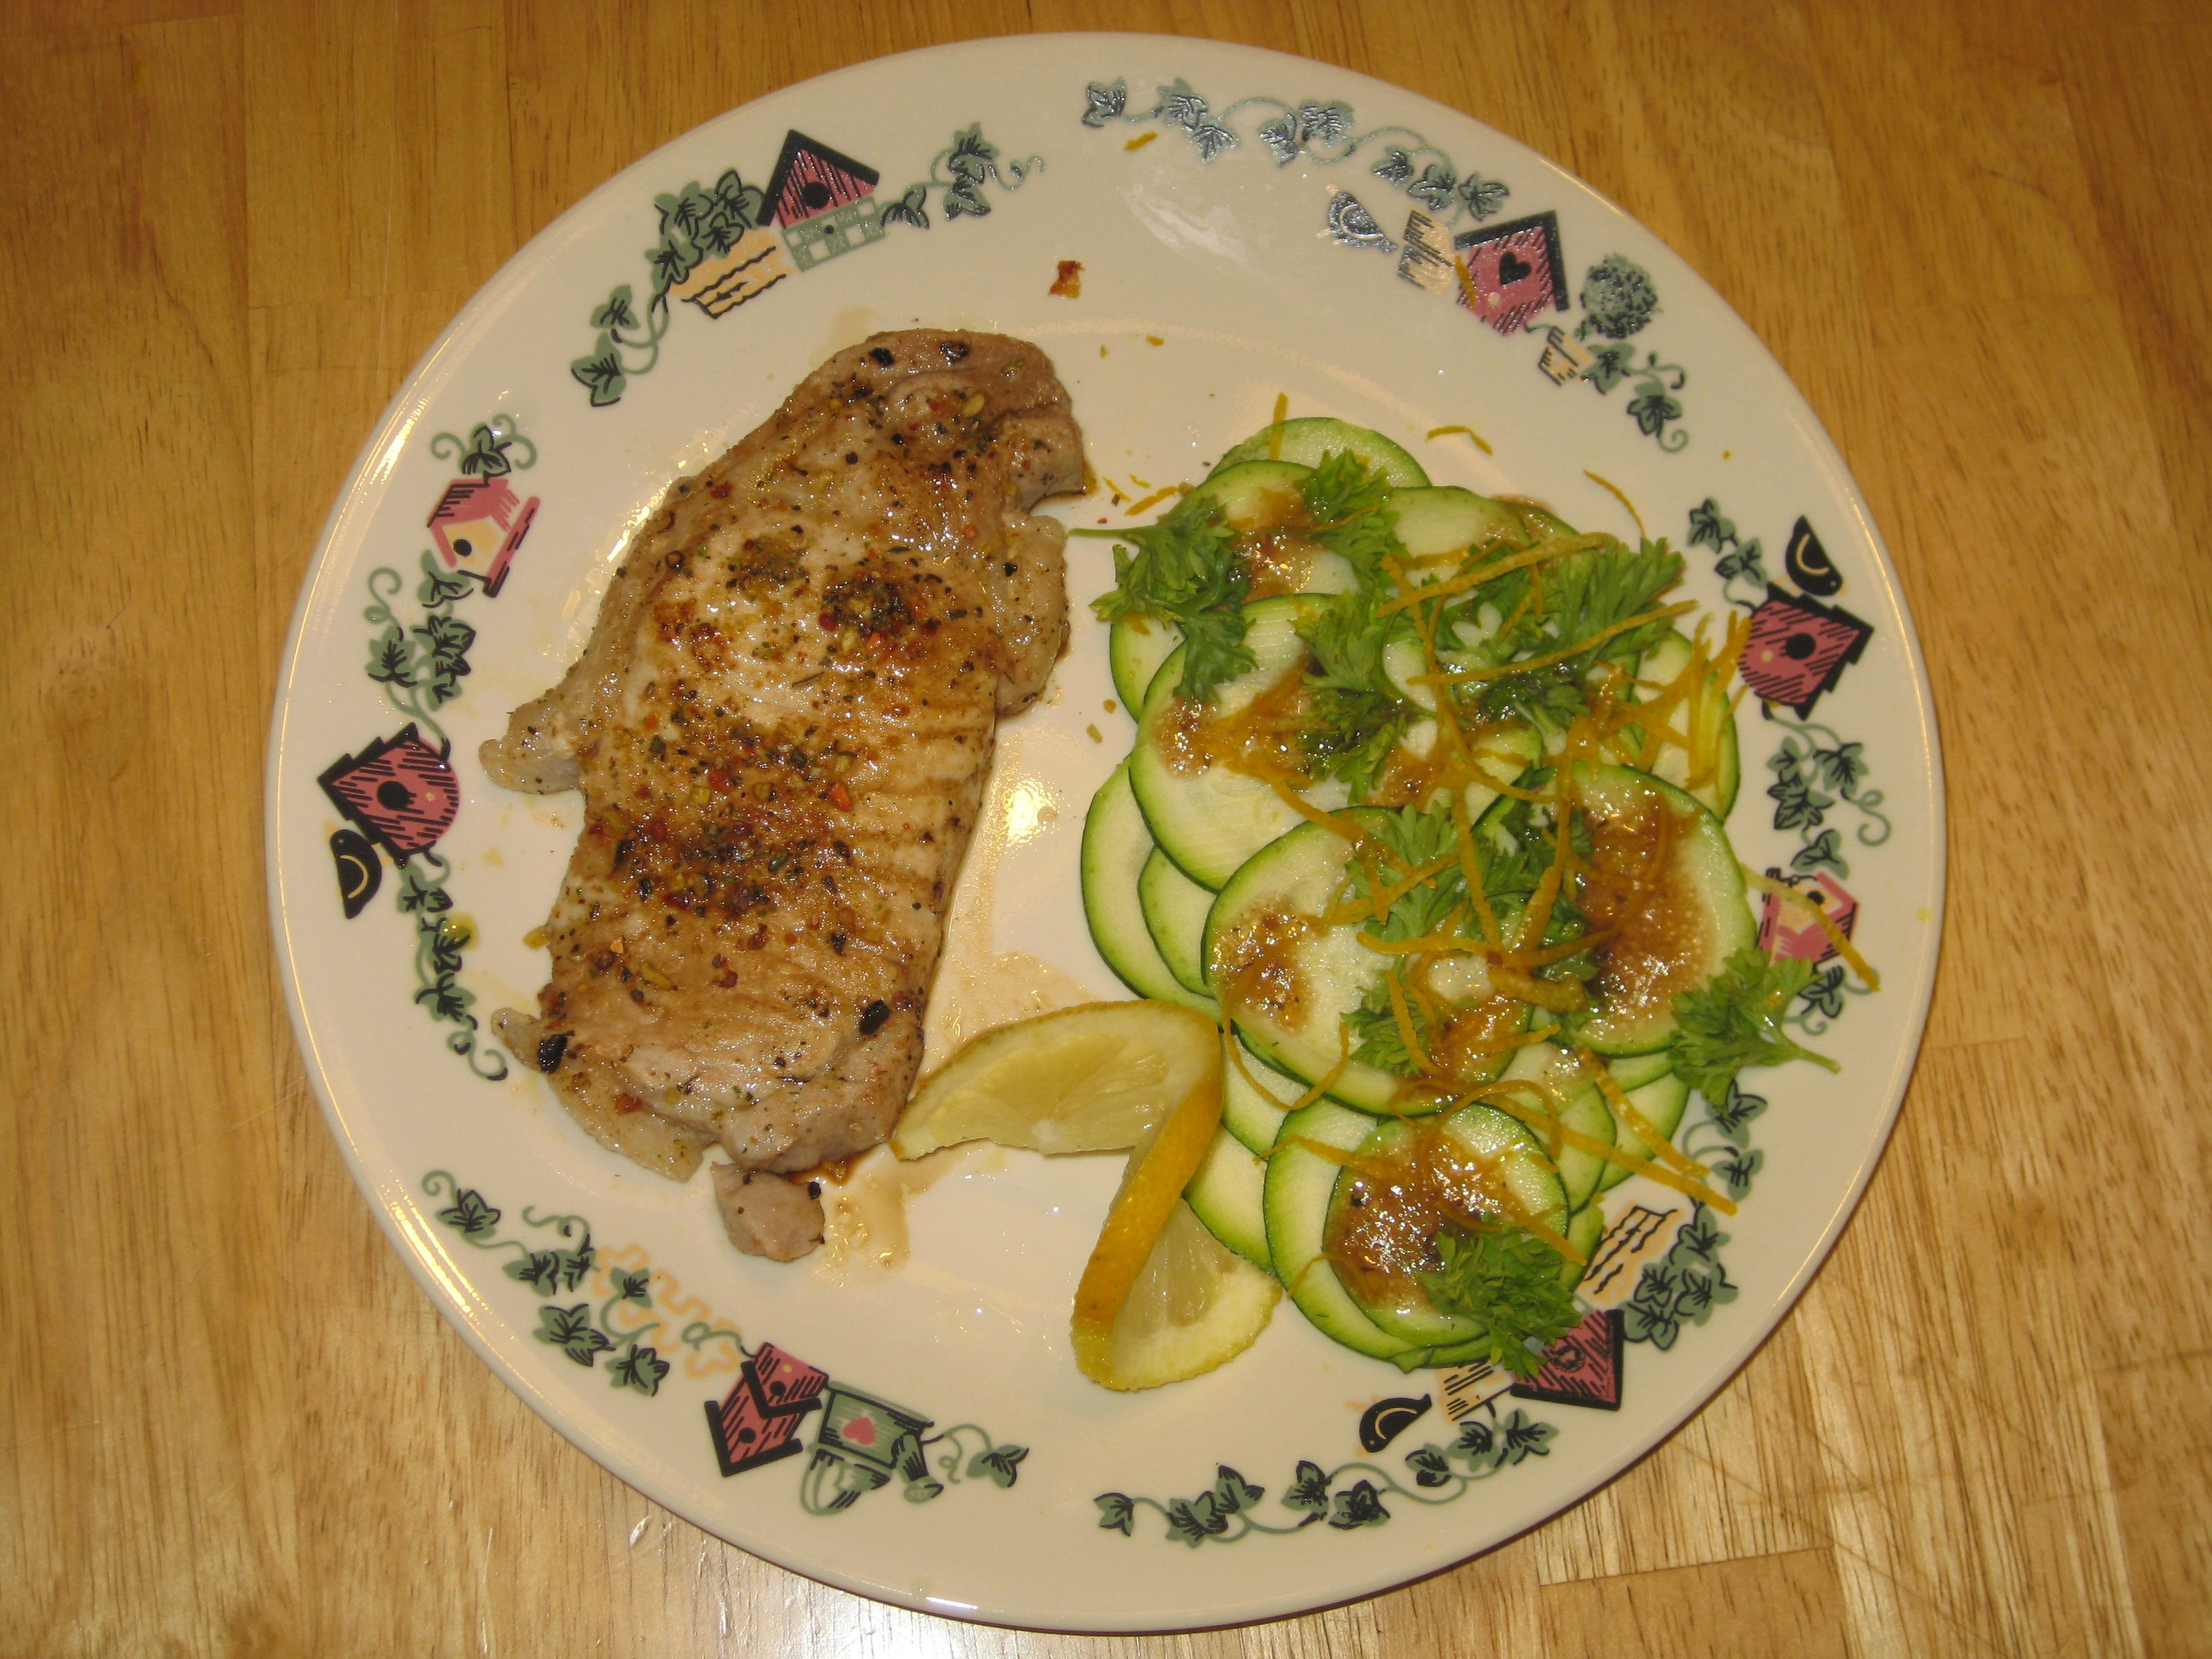 Pork Chops With Zuccini Salad How To Make: Pork Chop Cook Pork Chop In  Frying